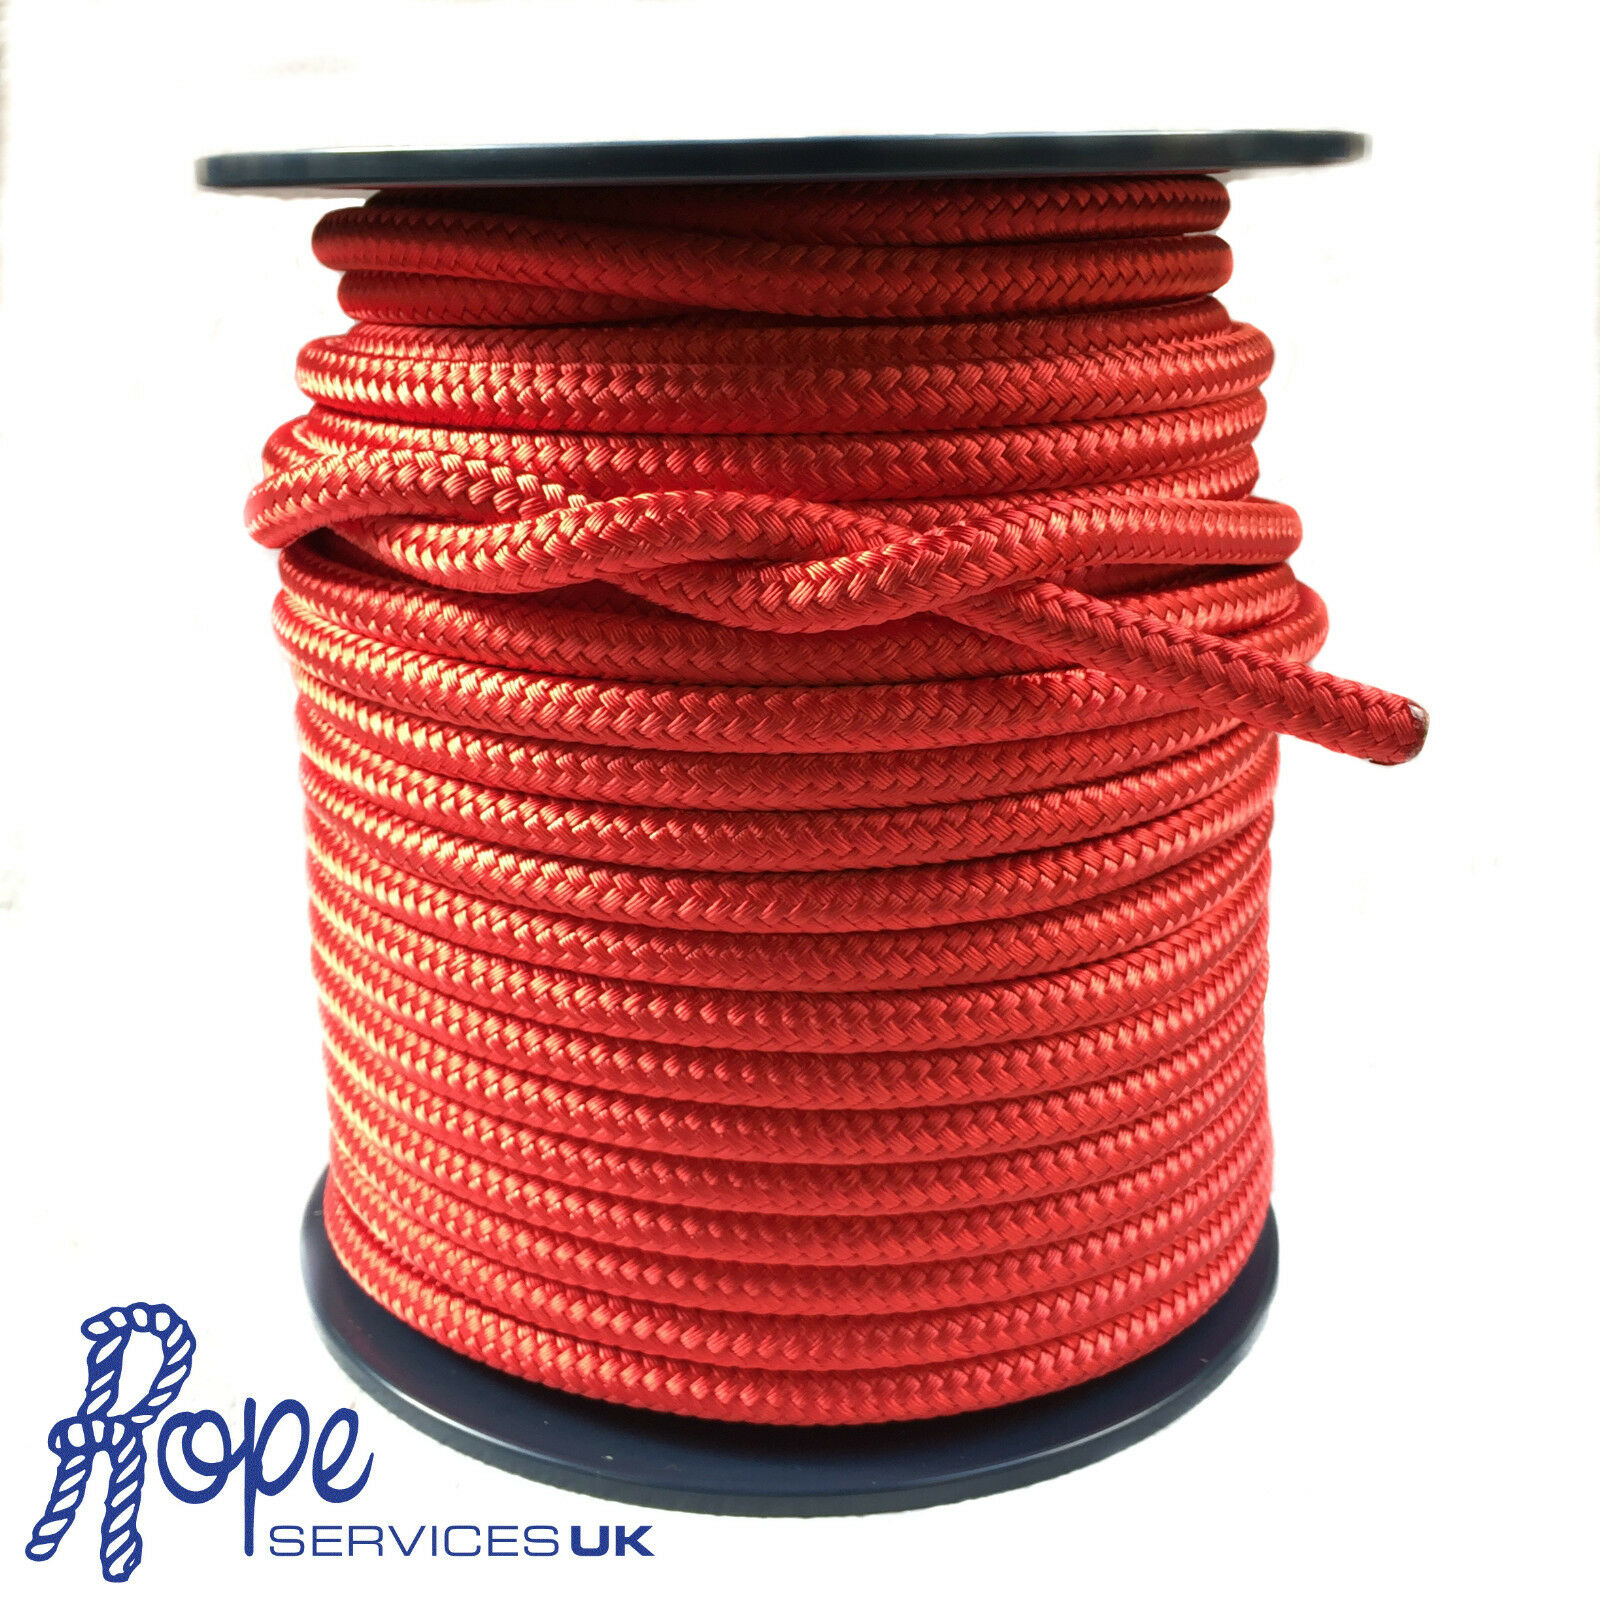 8mm Red Double Braid Polyester x 30 Metres, Braid on Braid Rope Marine Yachts